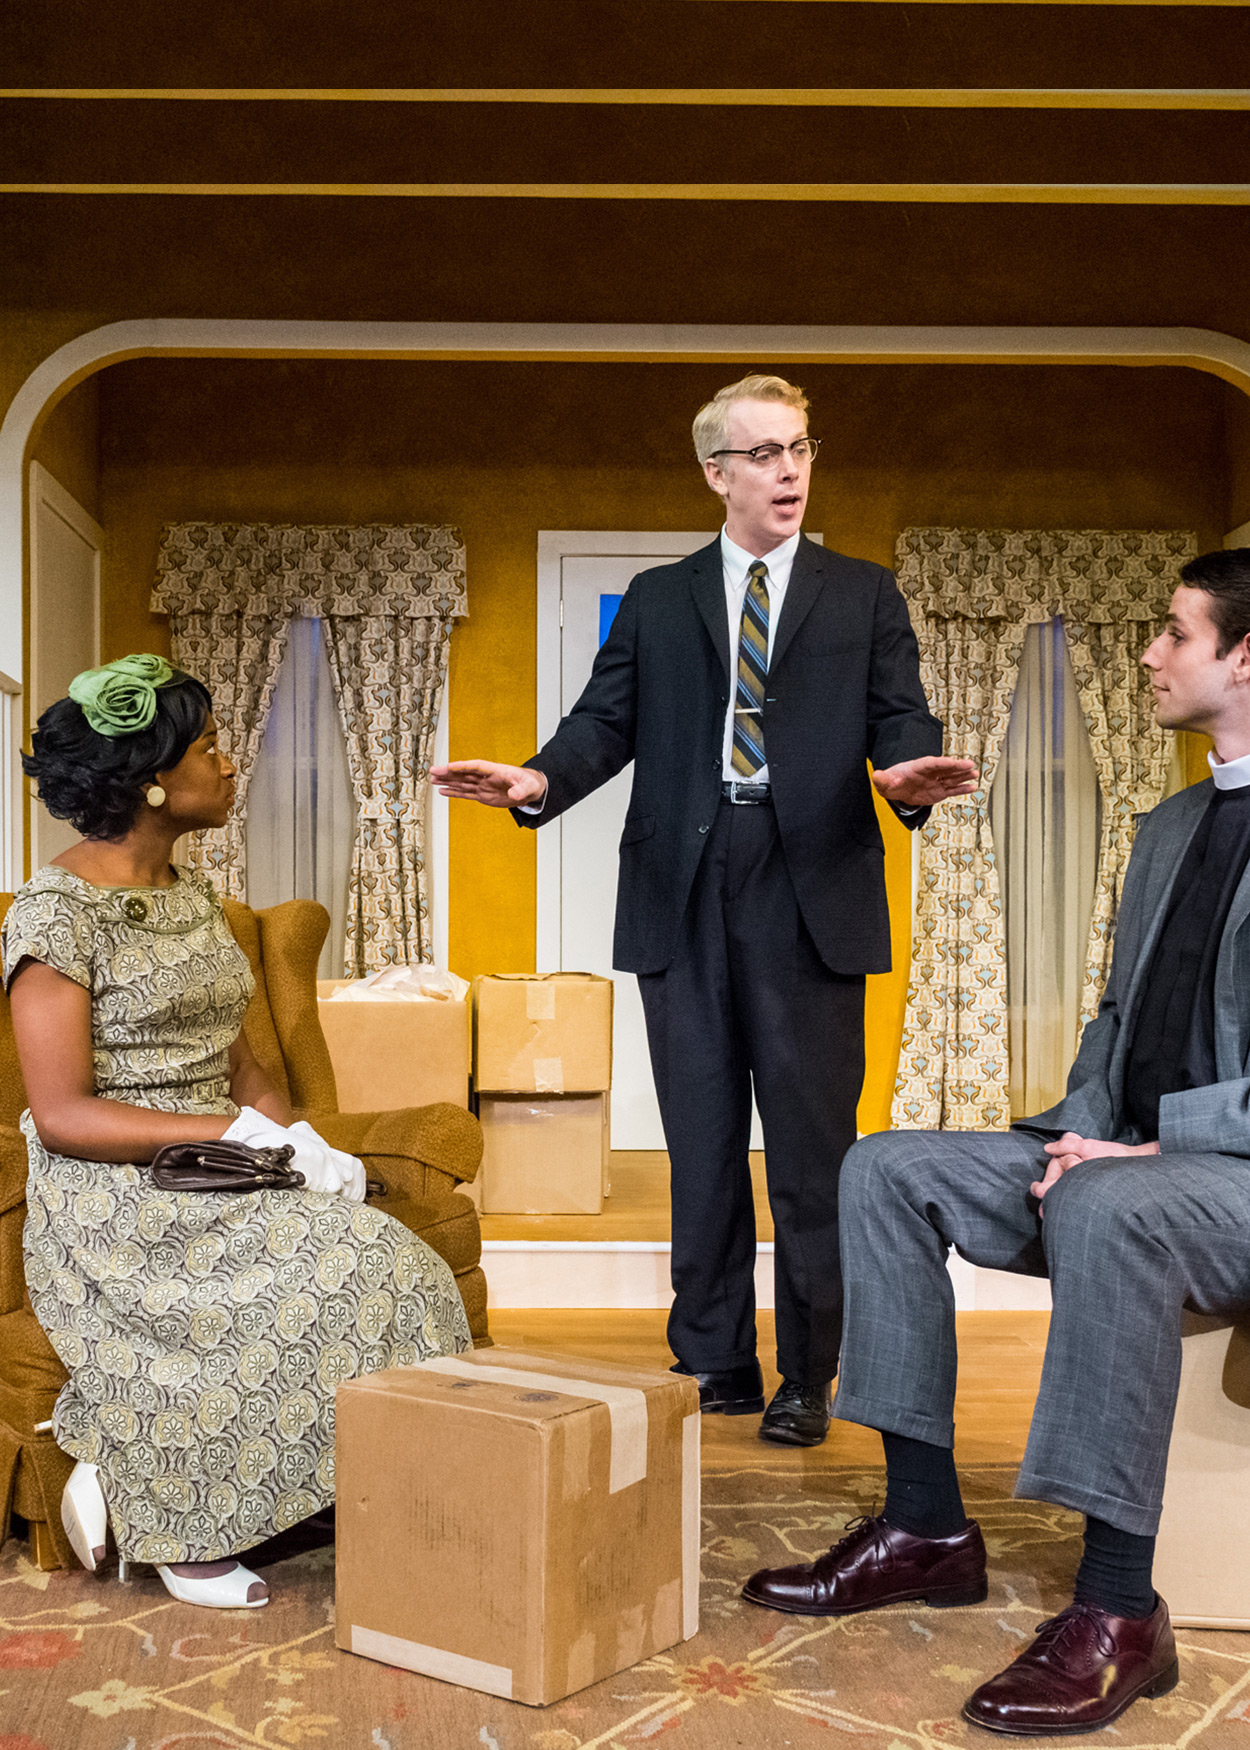 Production Photo from Clybourne Park (2013). The set is a living room in 1959. A black man stands in the back left corner, a black woman its in a chair, a white male stands in the center and a white priest sits on a box.